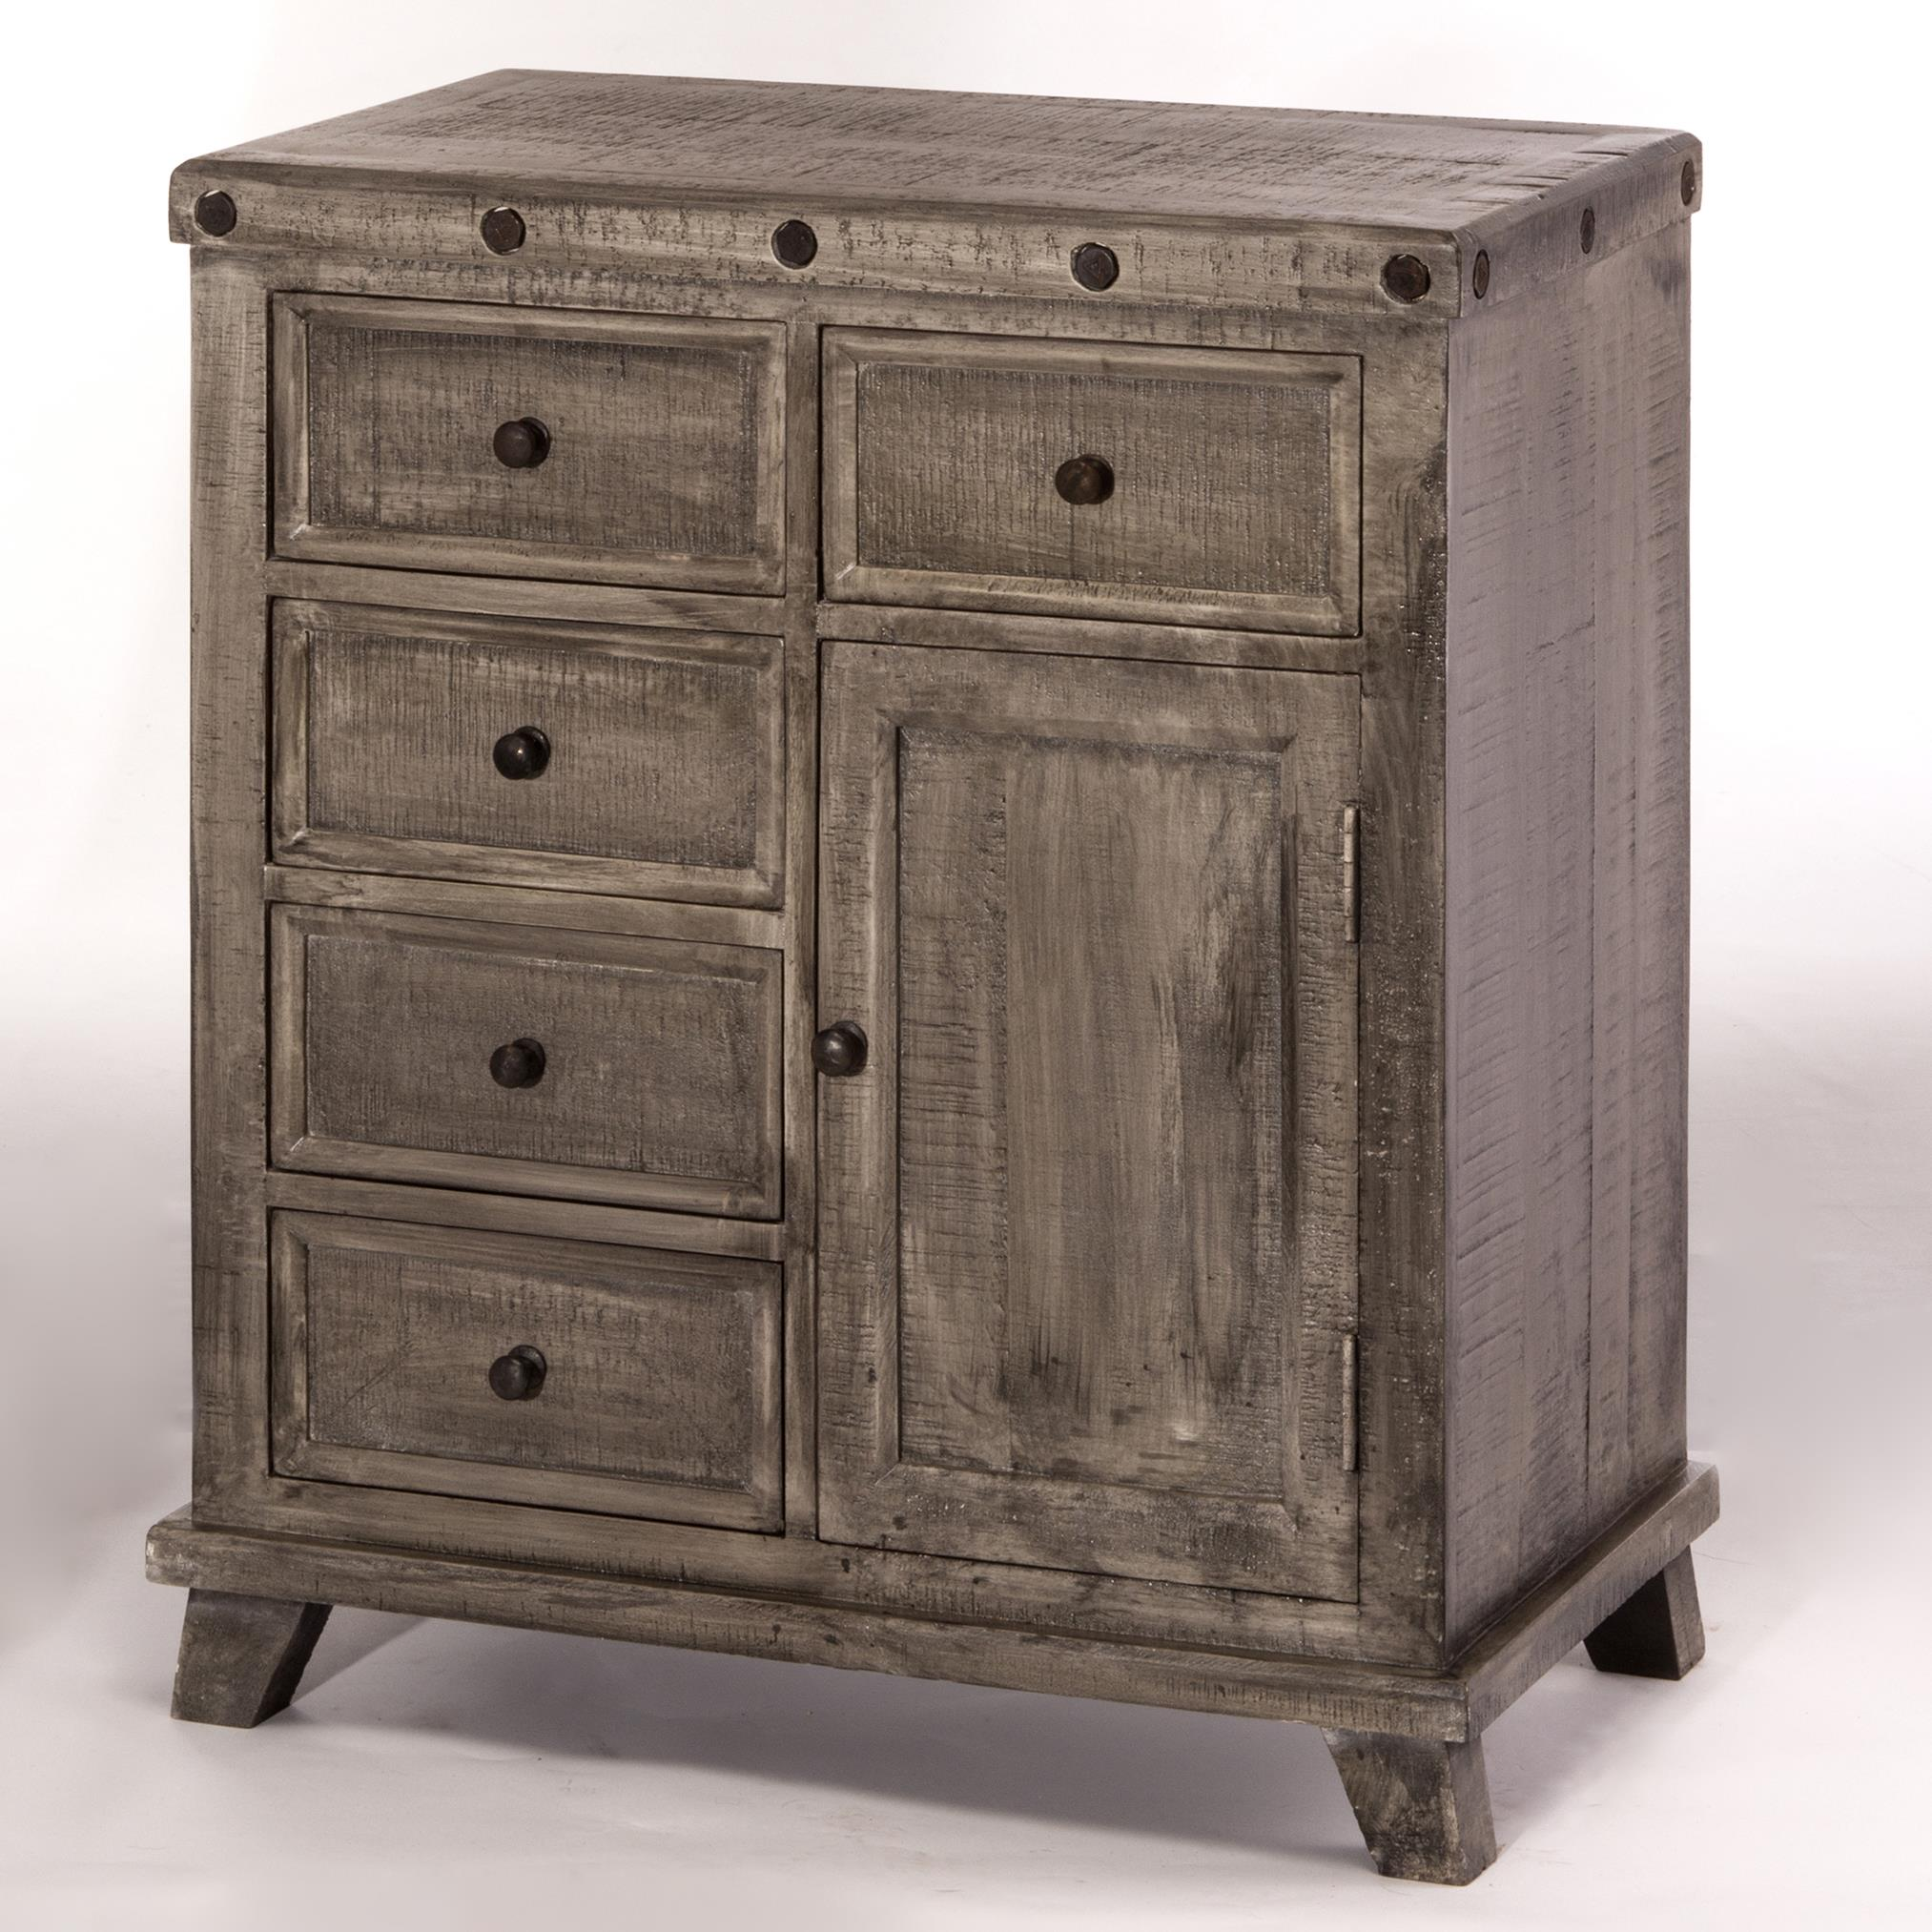 Hillsdale Bolt Tier Cabinet - Item Number: 5805-861